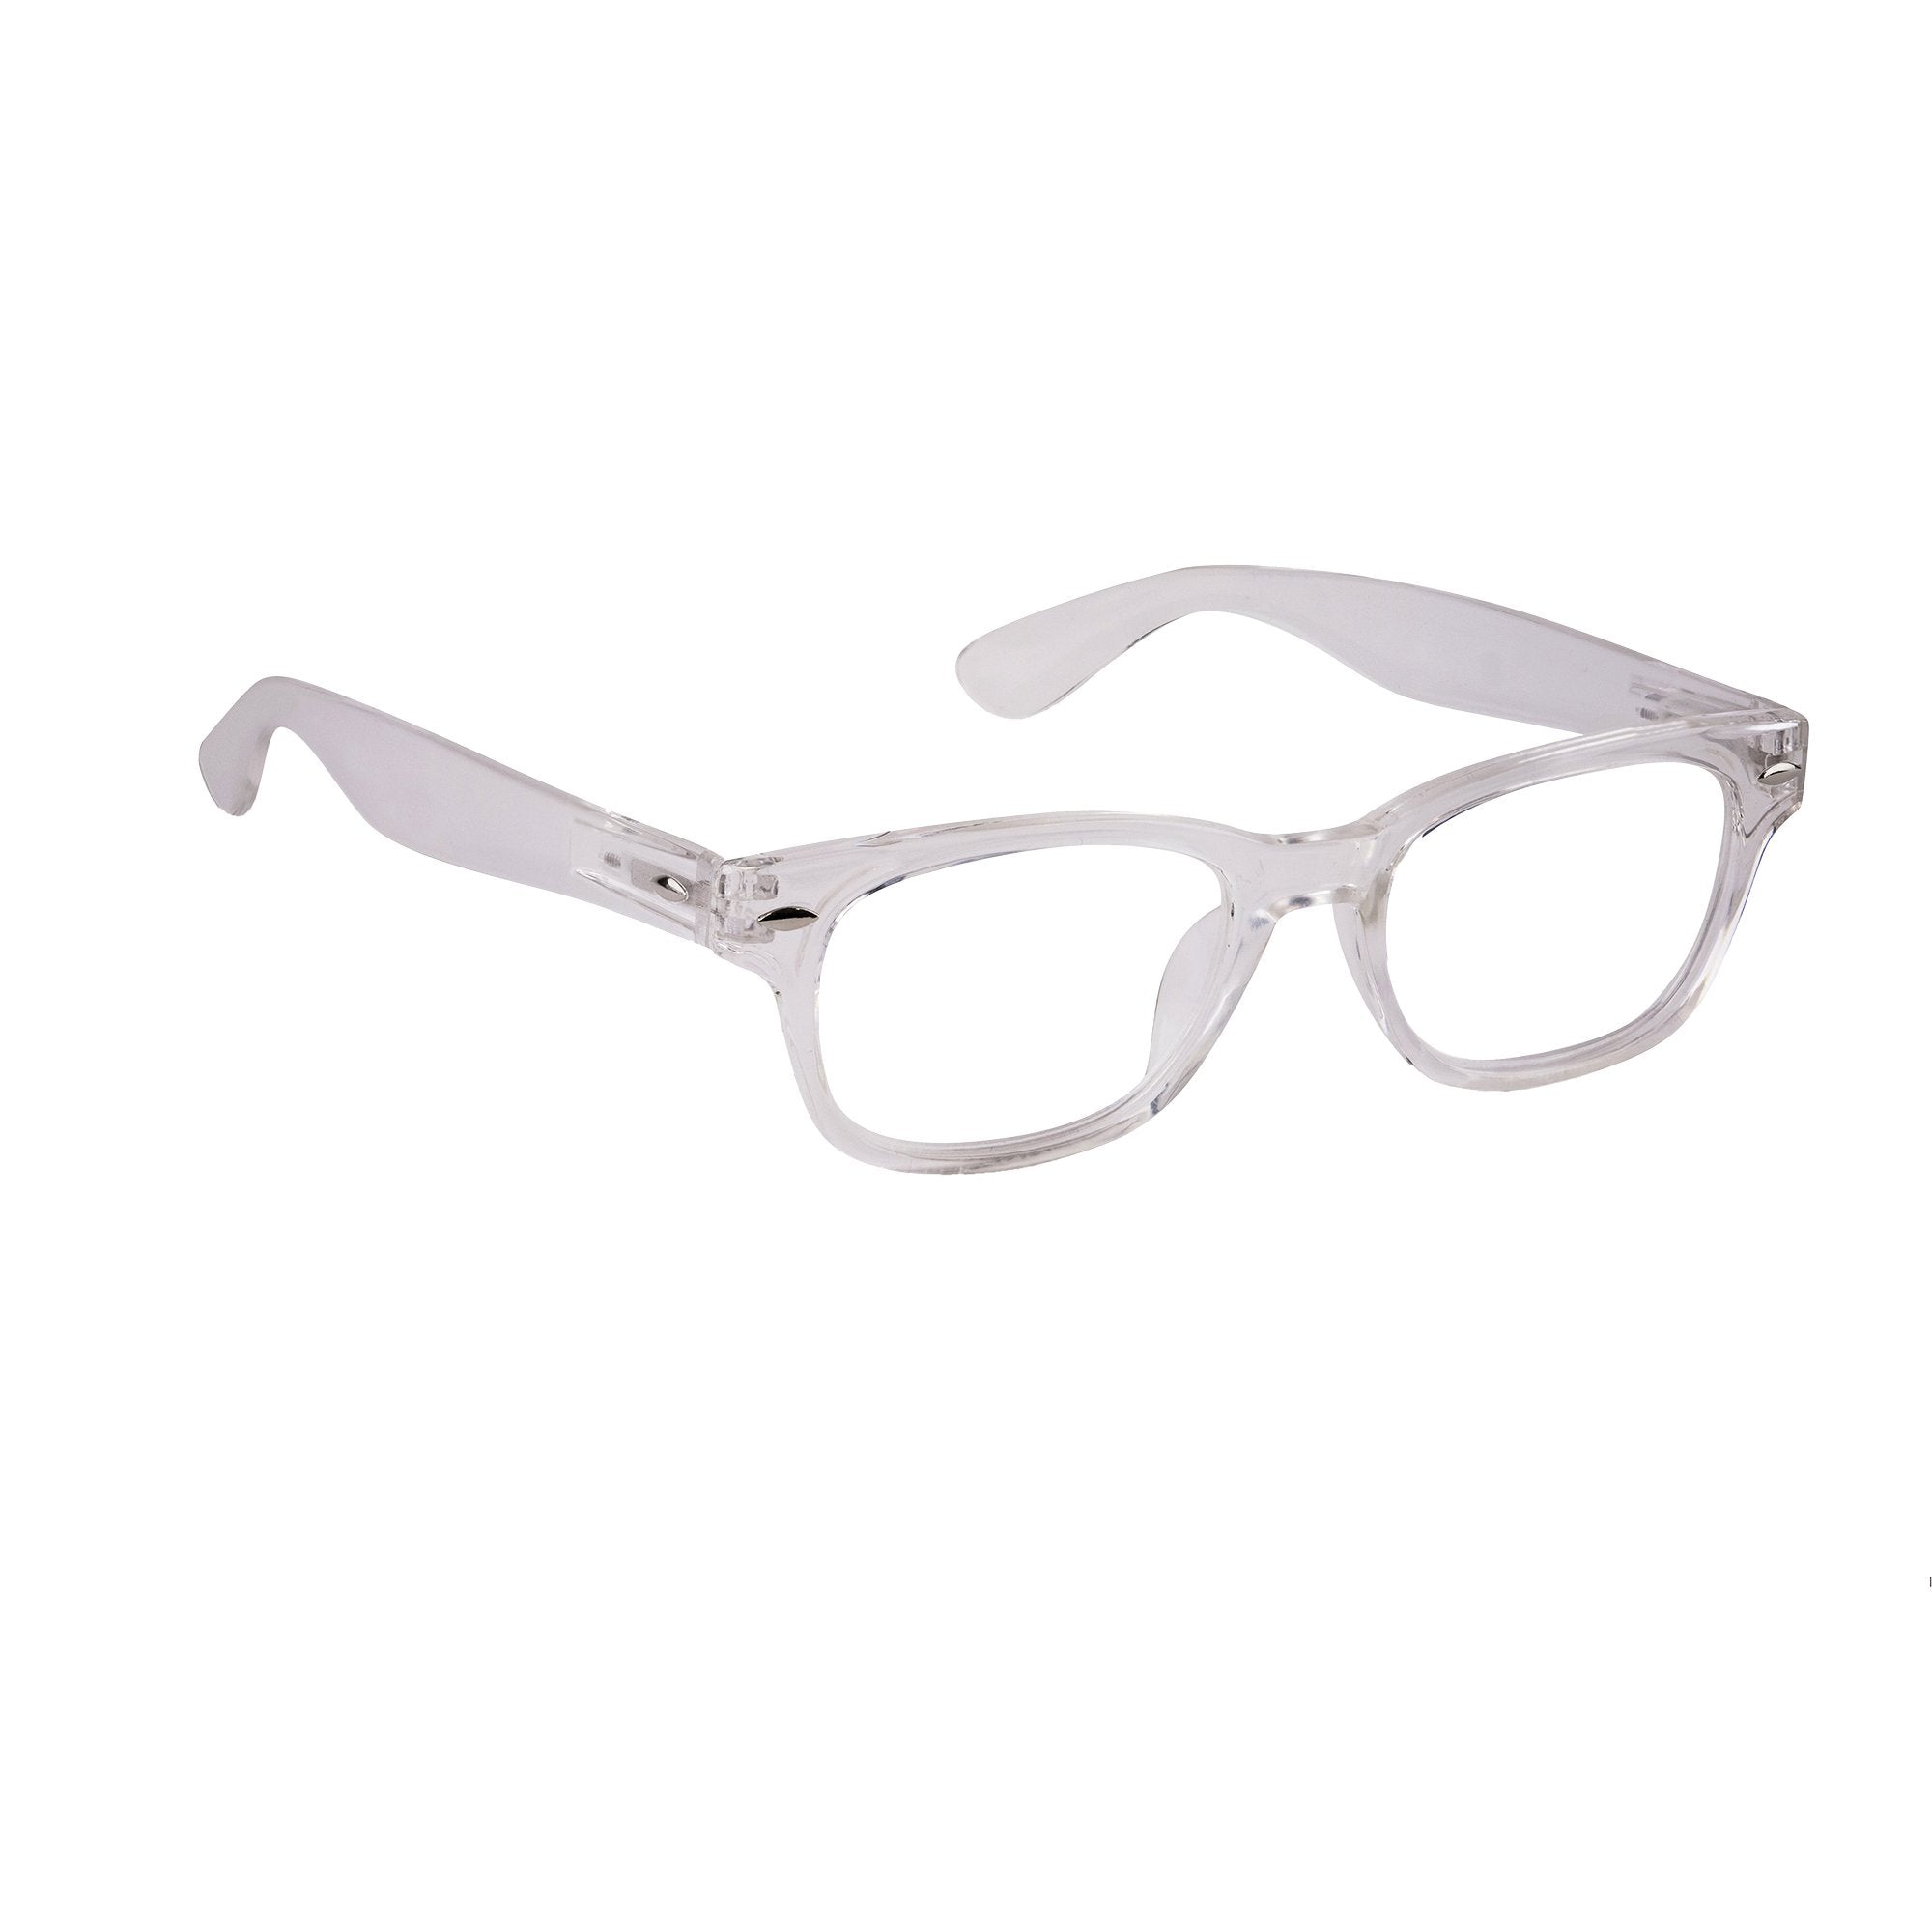 1b20979b45a Peeperspecs Simply Peepers Clear Reading Glasses - Spa Vargas